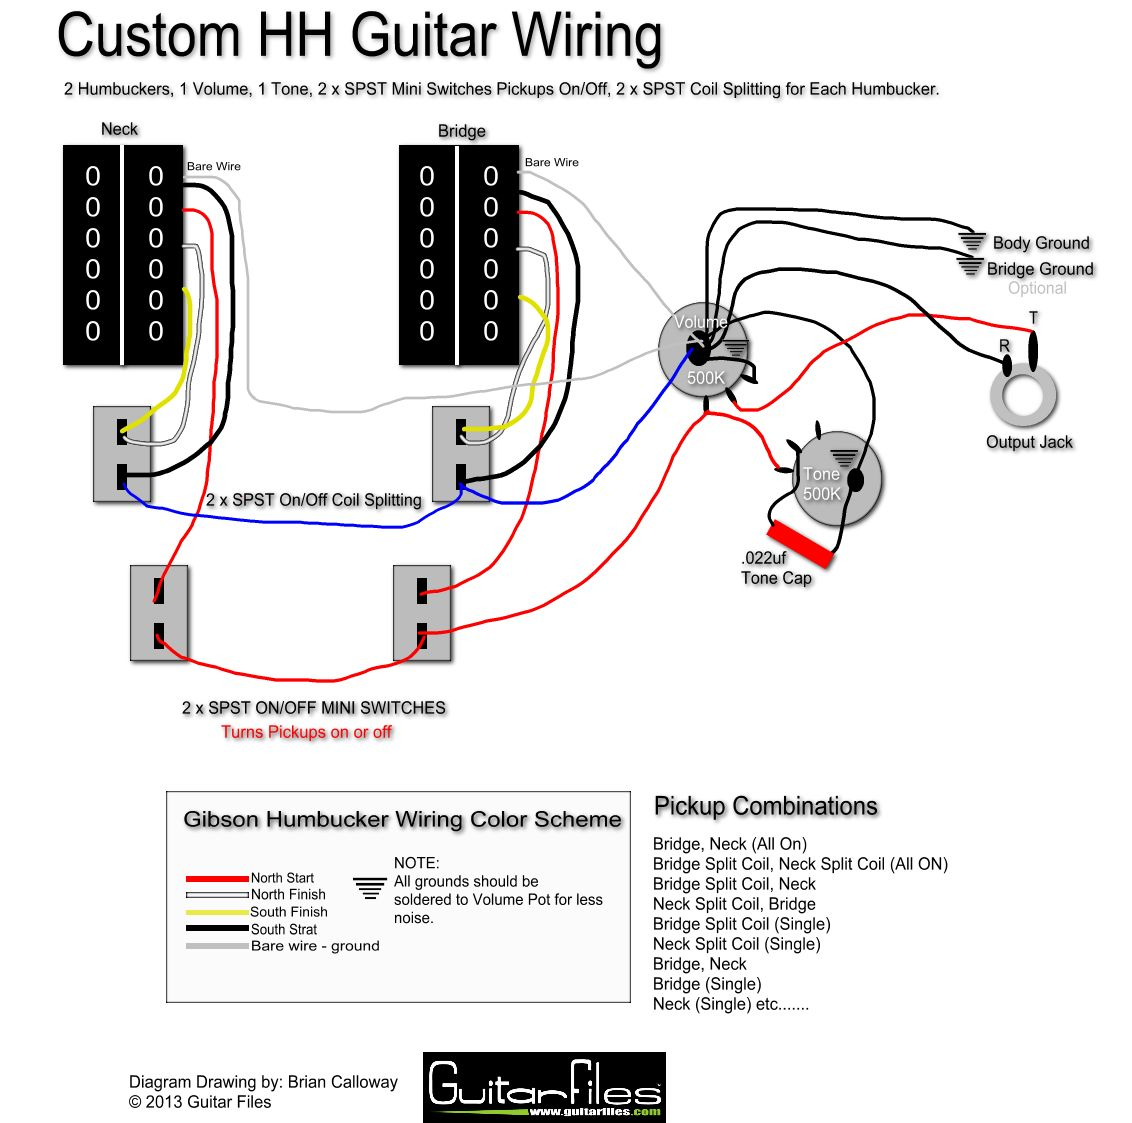 2 humbuckers 5 way rotary switch wiring diagram guitar tech custom hh wiring diagram spst coil splitting and spst switching